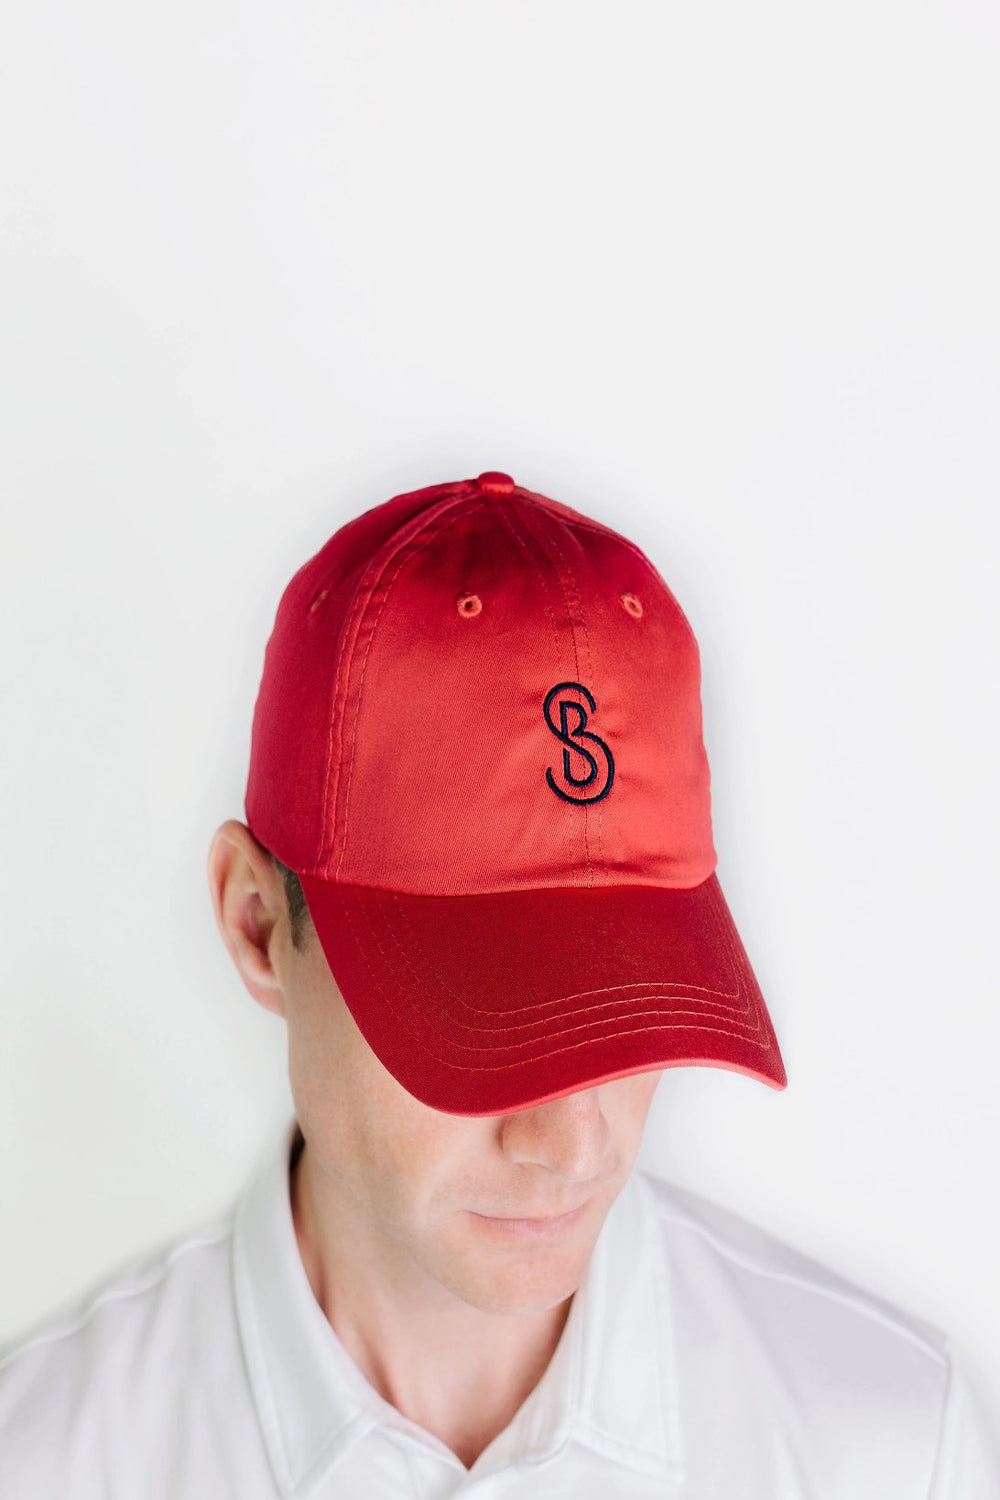 SB Lightweight Cotton Hat